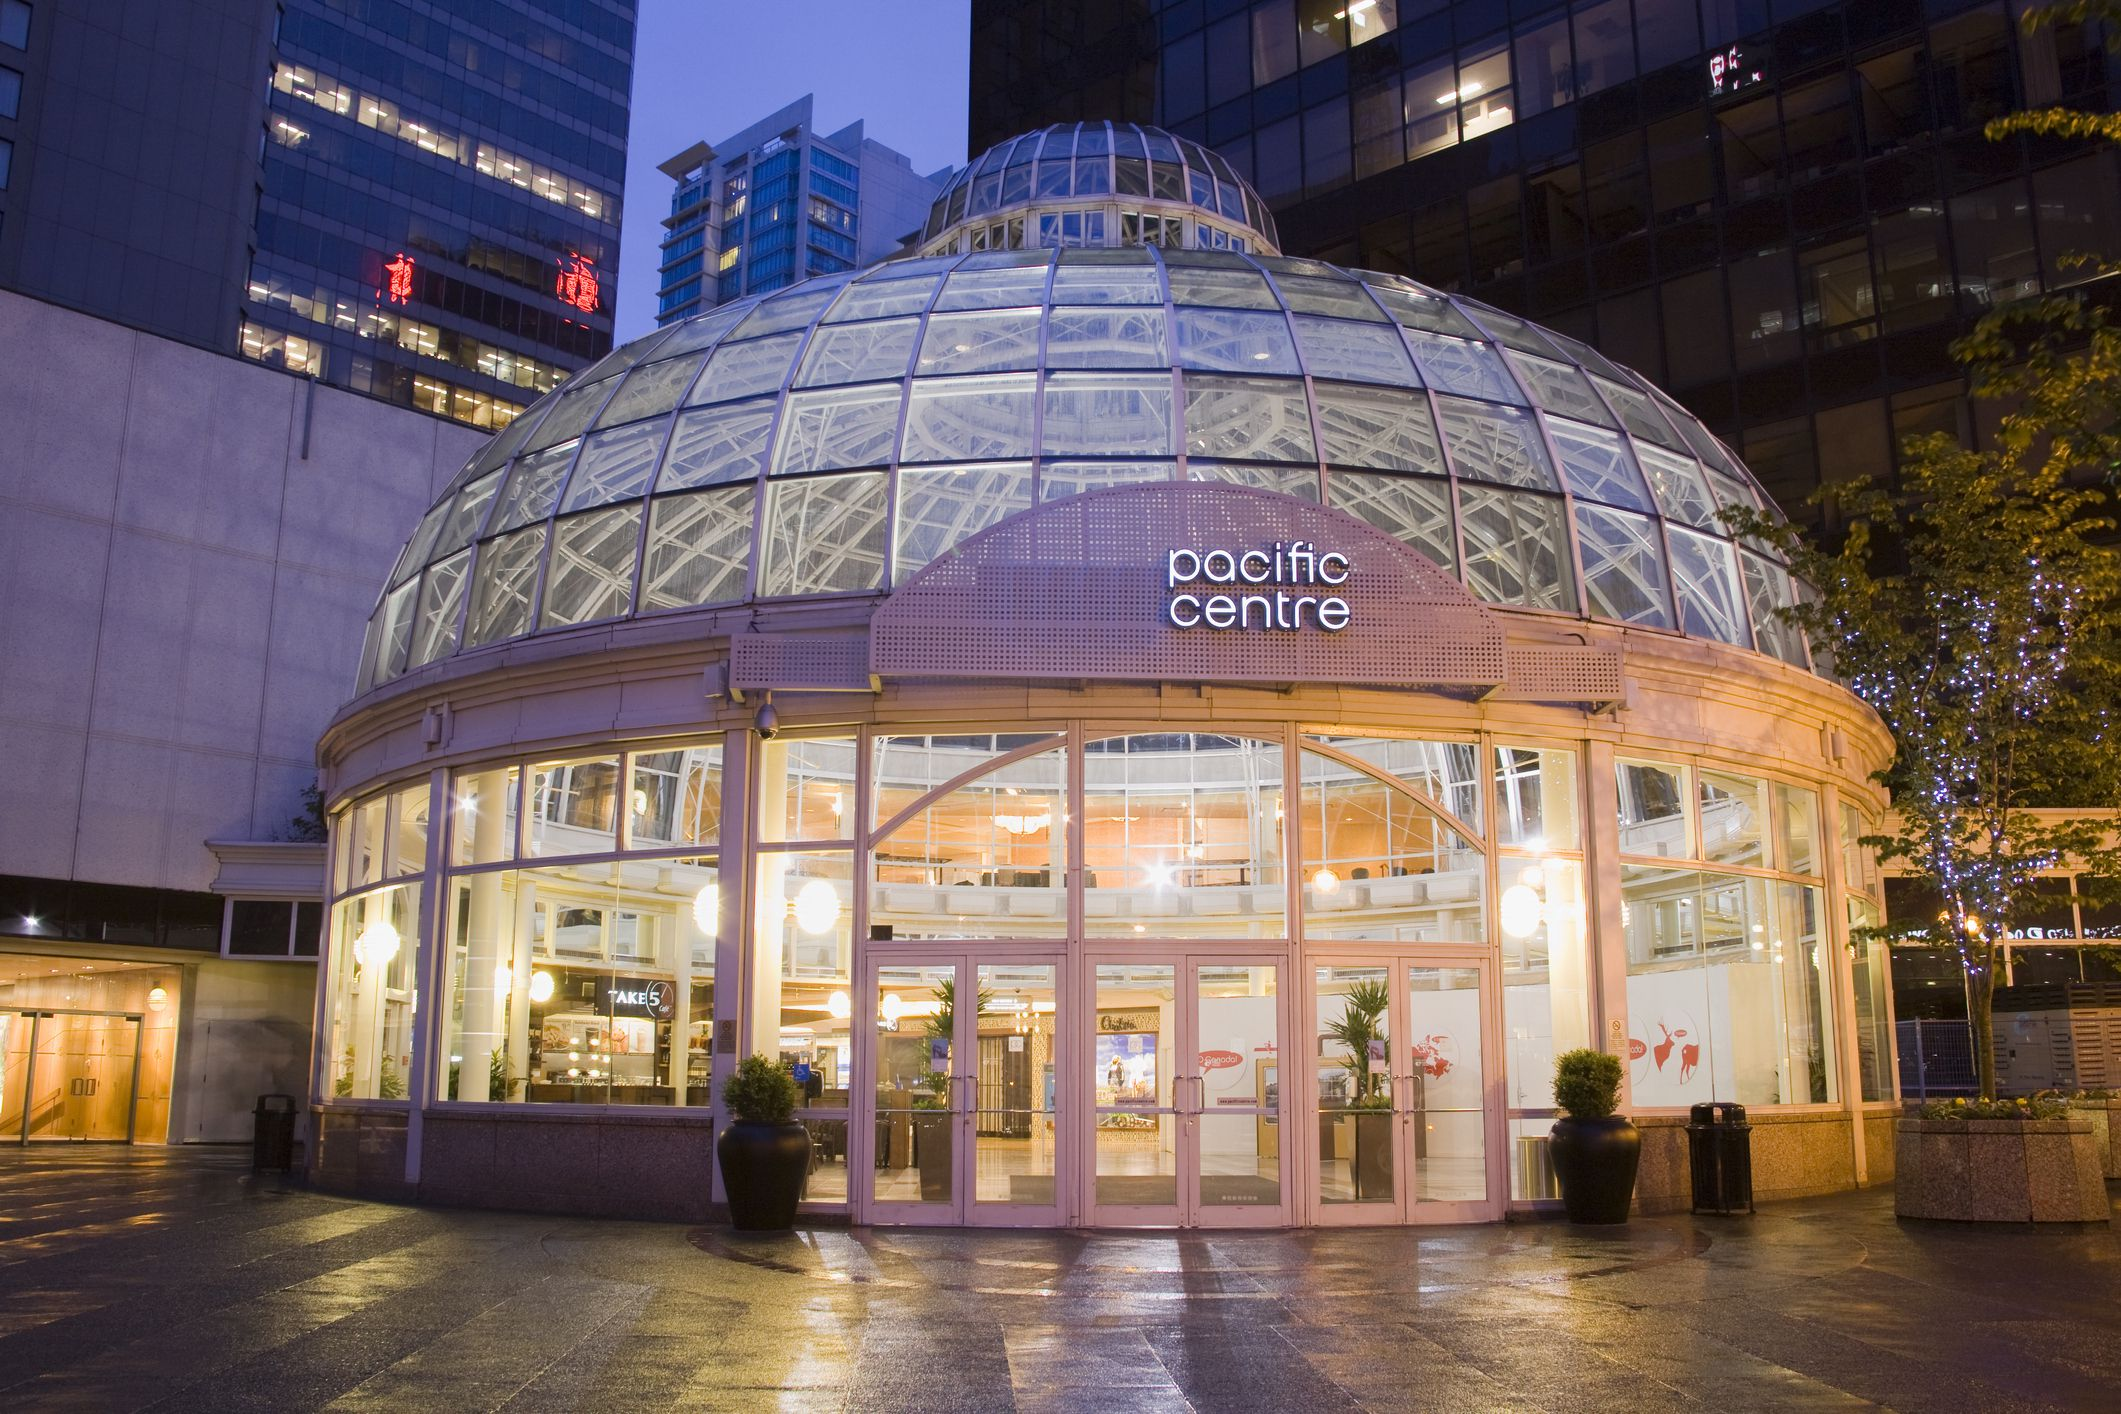 The Apple Store is located at West Georgia Street on the upper level of Pacific Centre, across from Harry Rosen. On public transit, take Millennium and Expo lines to Granville Station or Canada line to Vancouver City Centre.